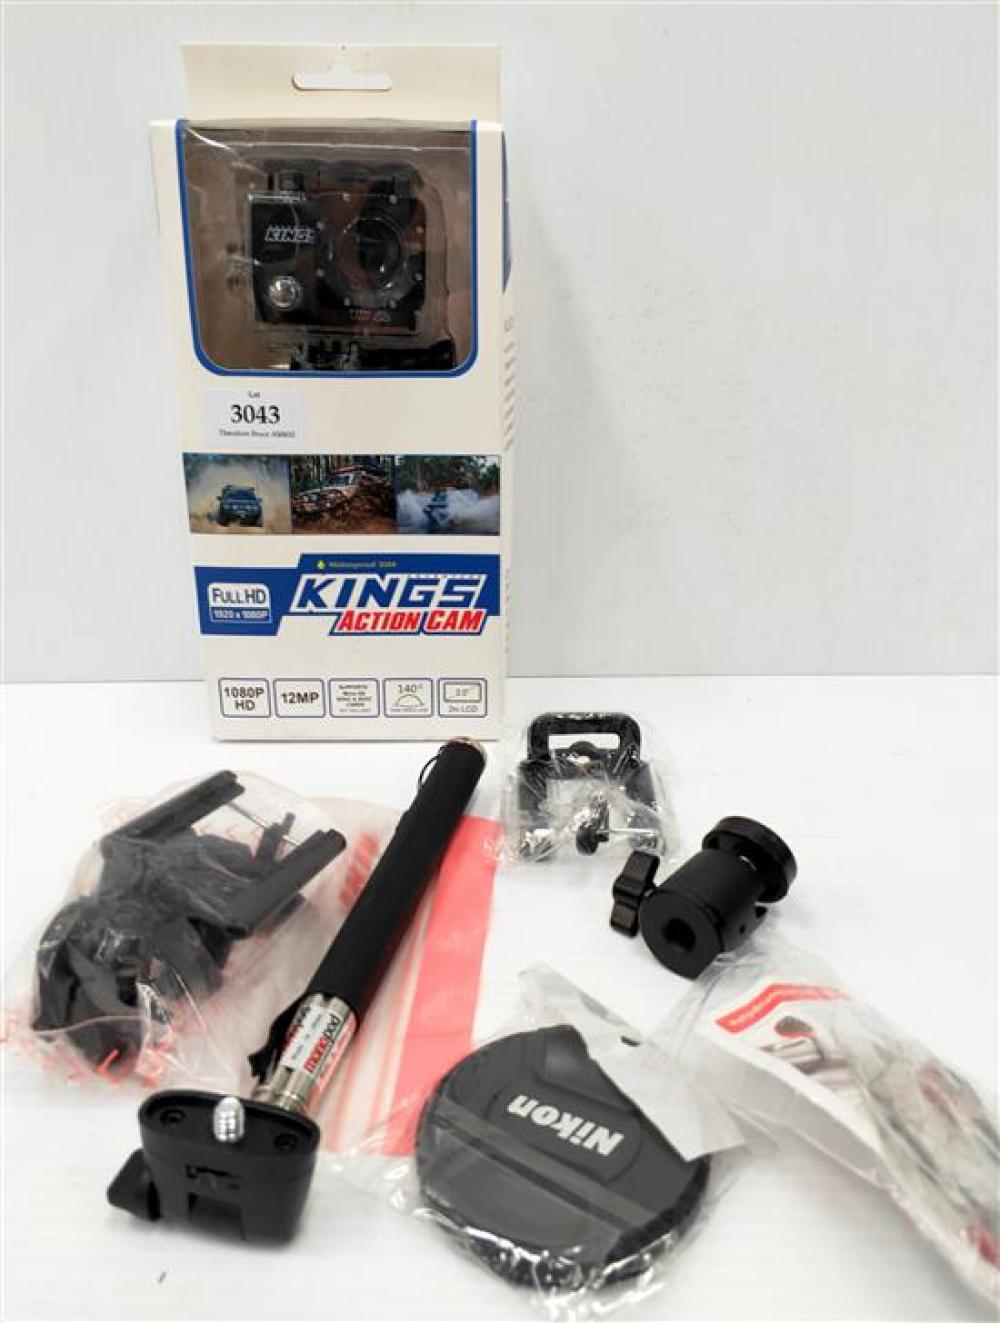 An action cam marked Kings plus assorted camera accessories